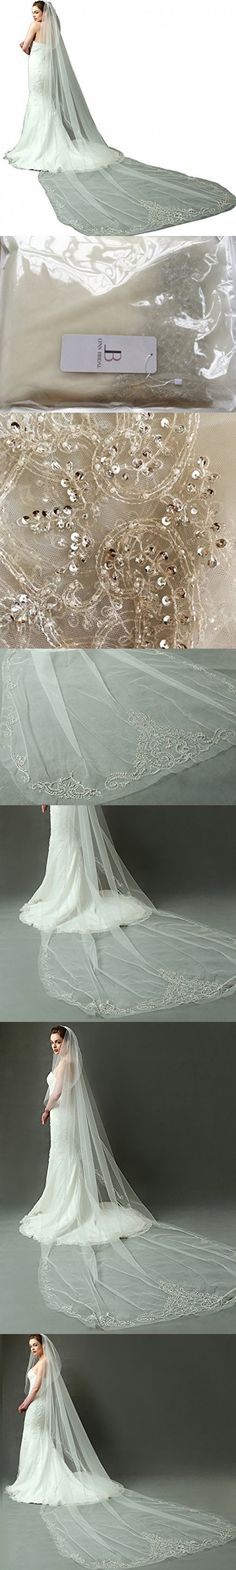 "LynnBridal Royal Length Wedding Veil with Vintage Beaded Motif 157"" Long Ivory"